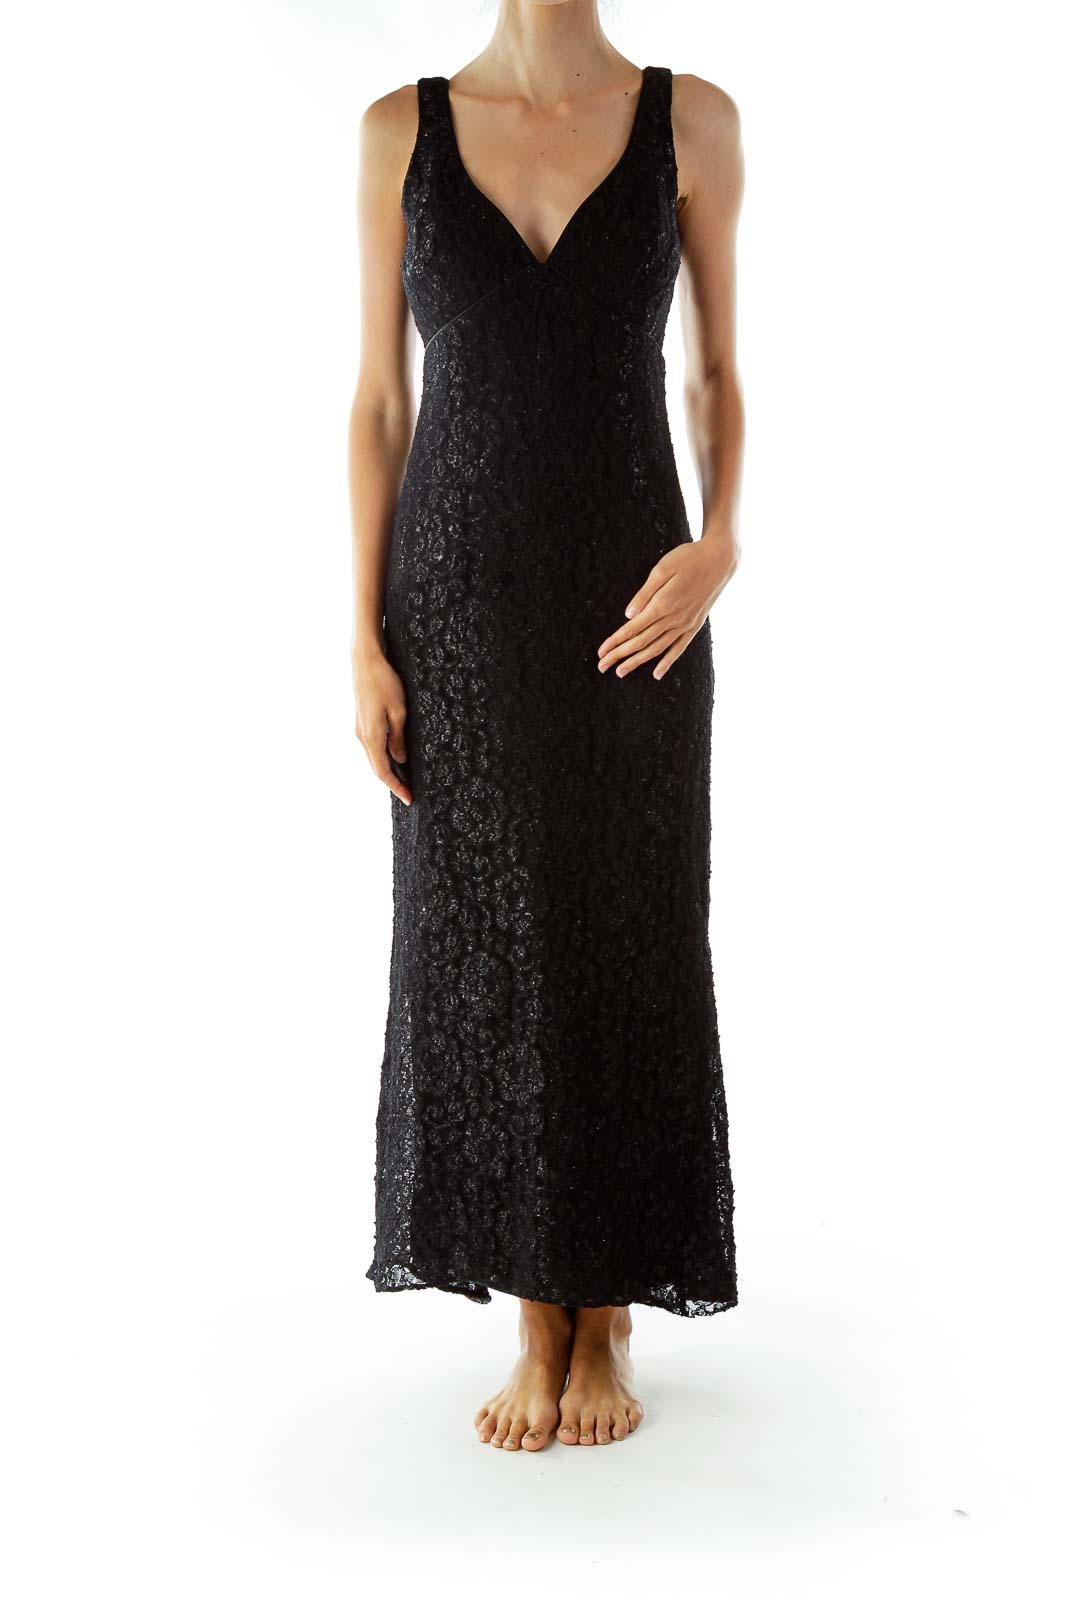 Black Lace Shimmer V-neck Sleeveless Evening Dress